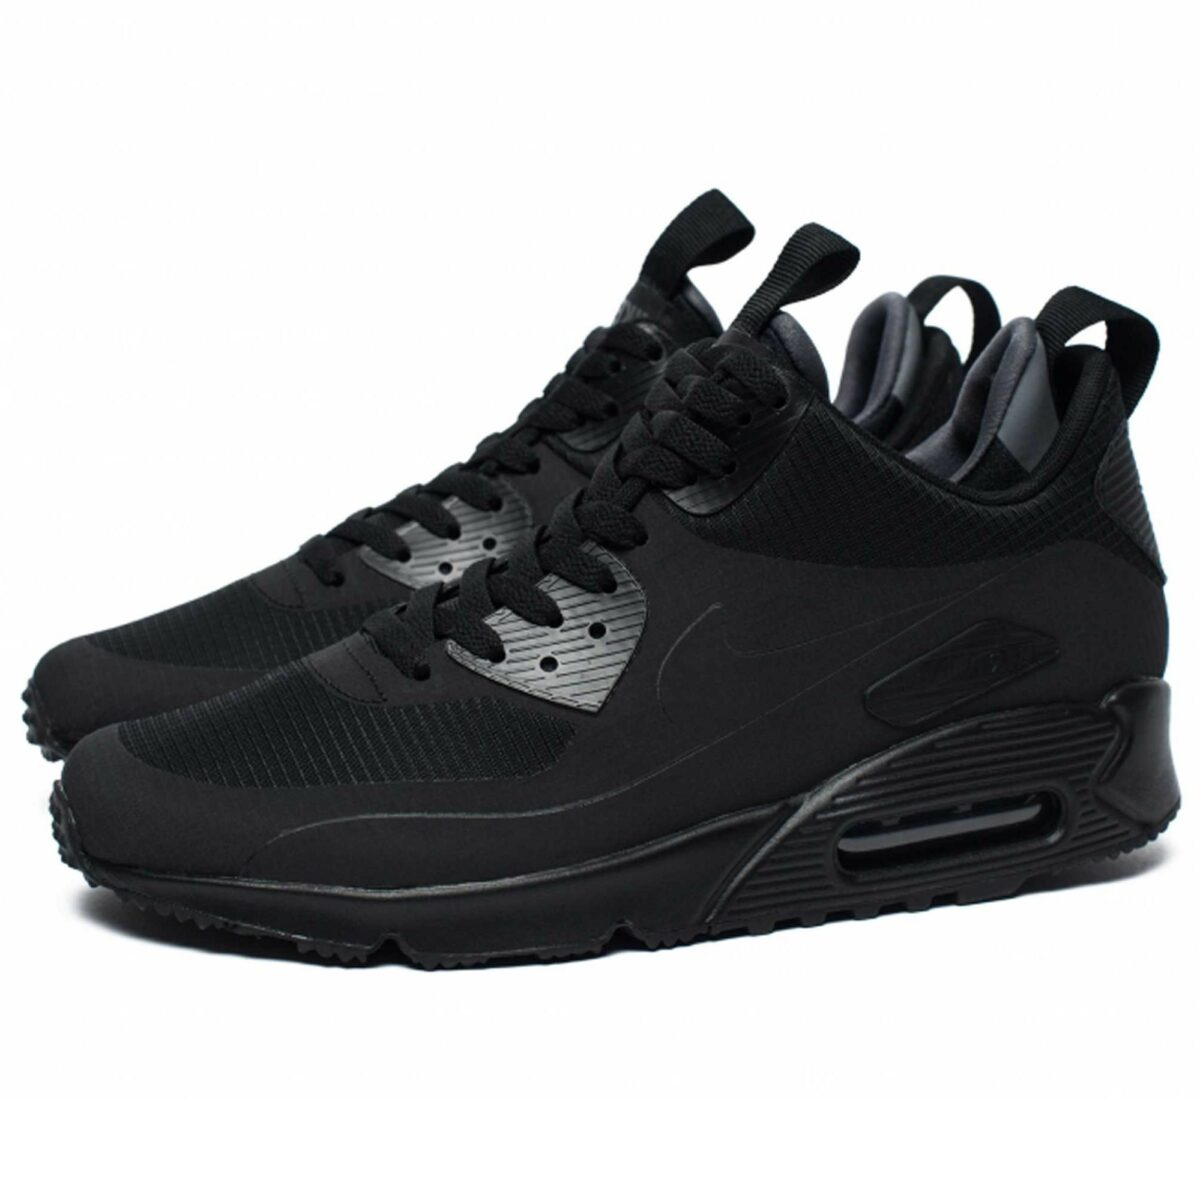 nike air max 90 ultra mid black winter 924458_002 купить